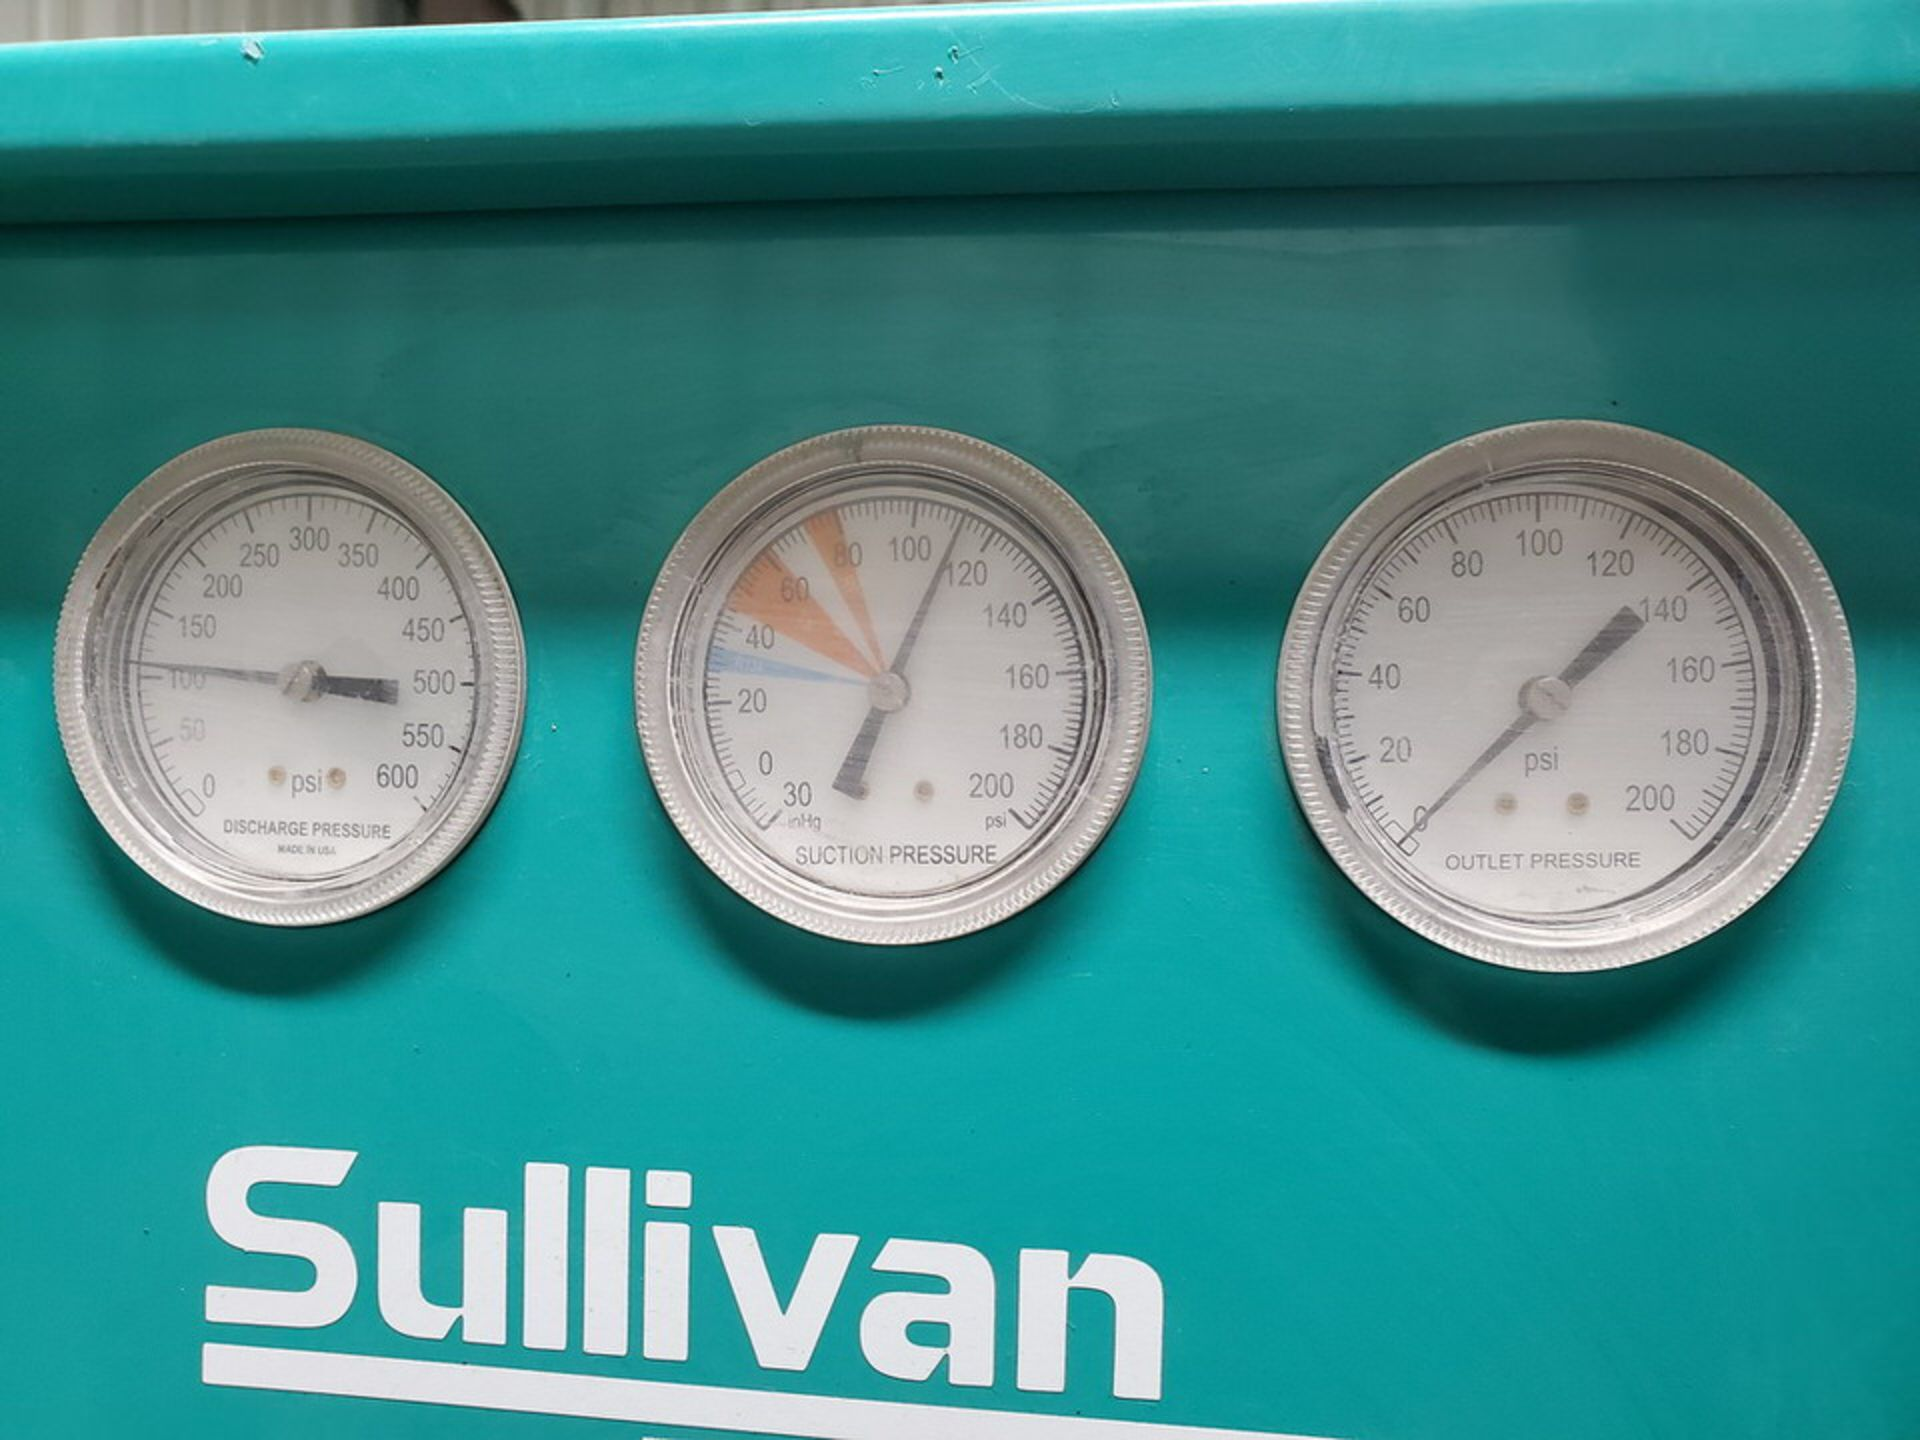 2017 Sullivan Palatek SPRF-1175A-436 Air Dryer 460V, 11.8A, 5HP, 150psi - Image 5 of 6